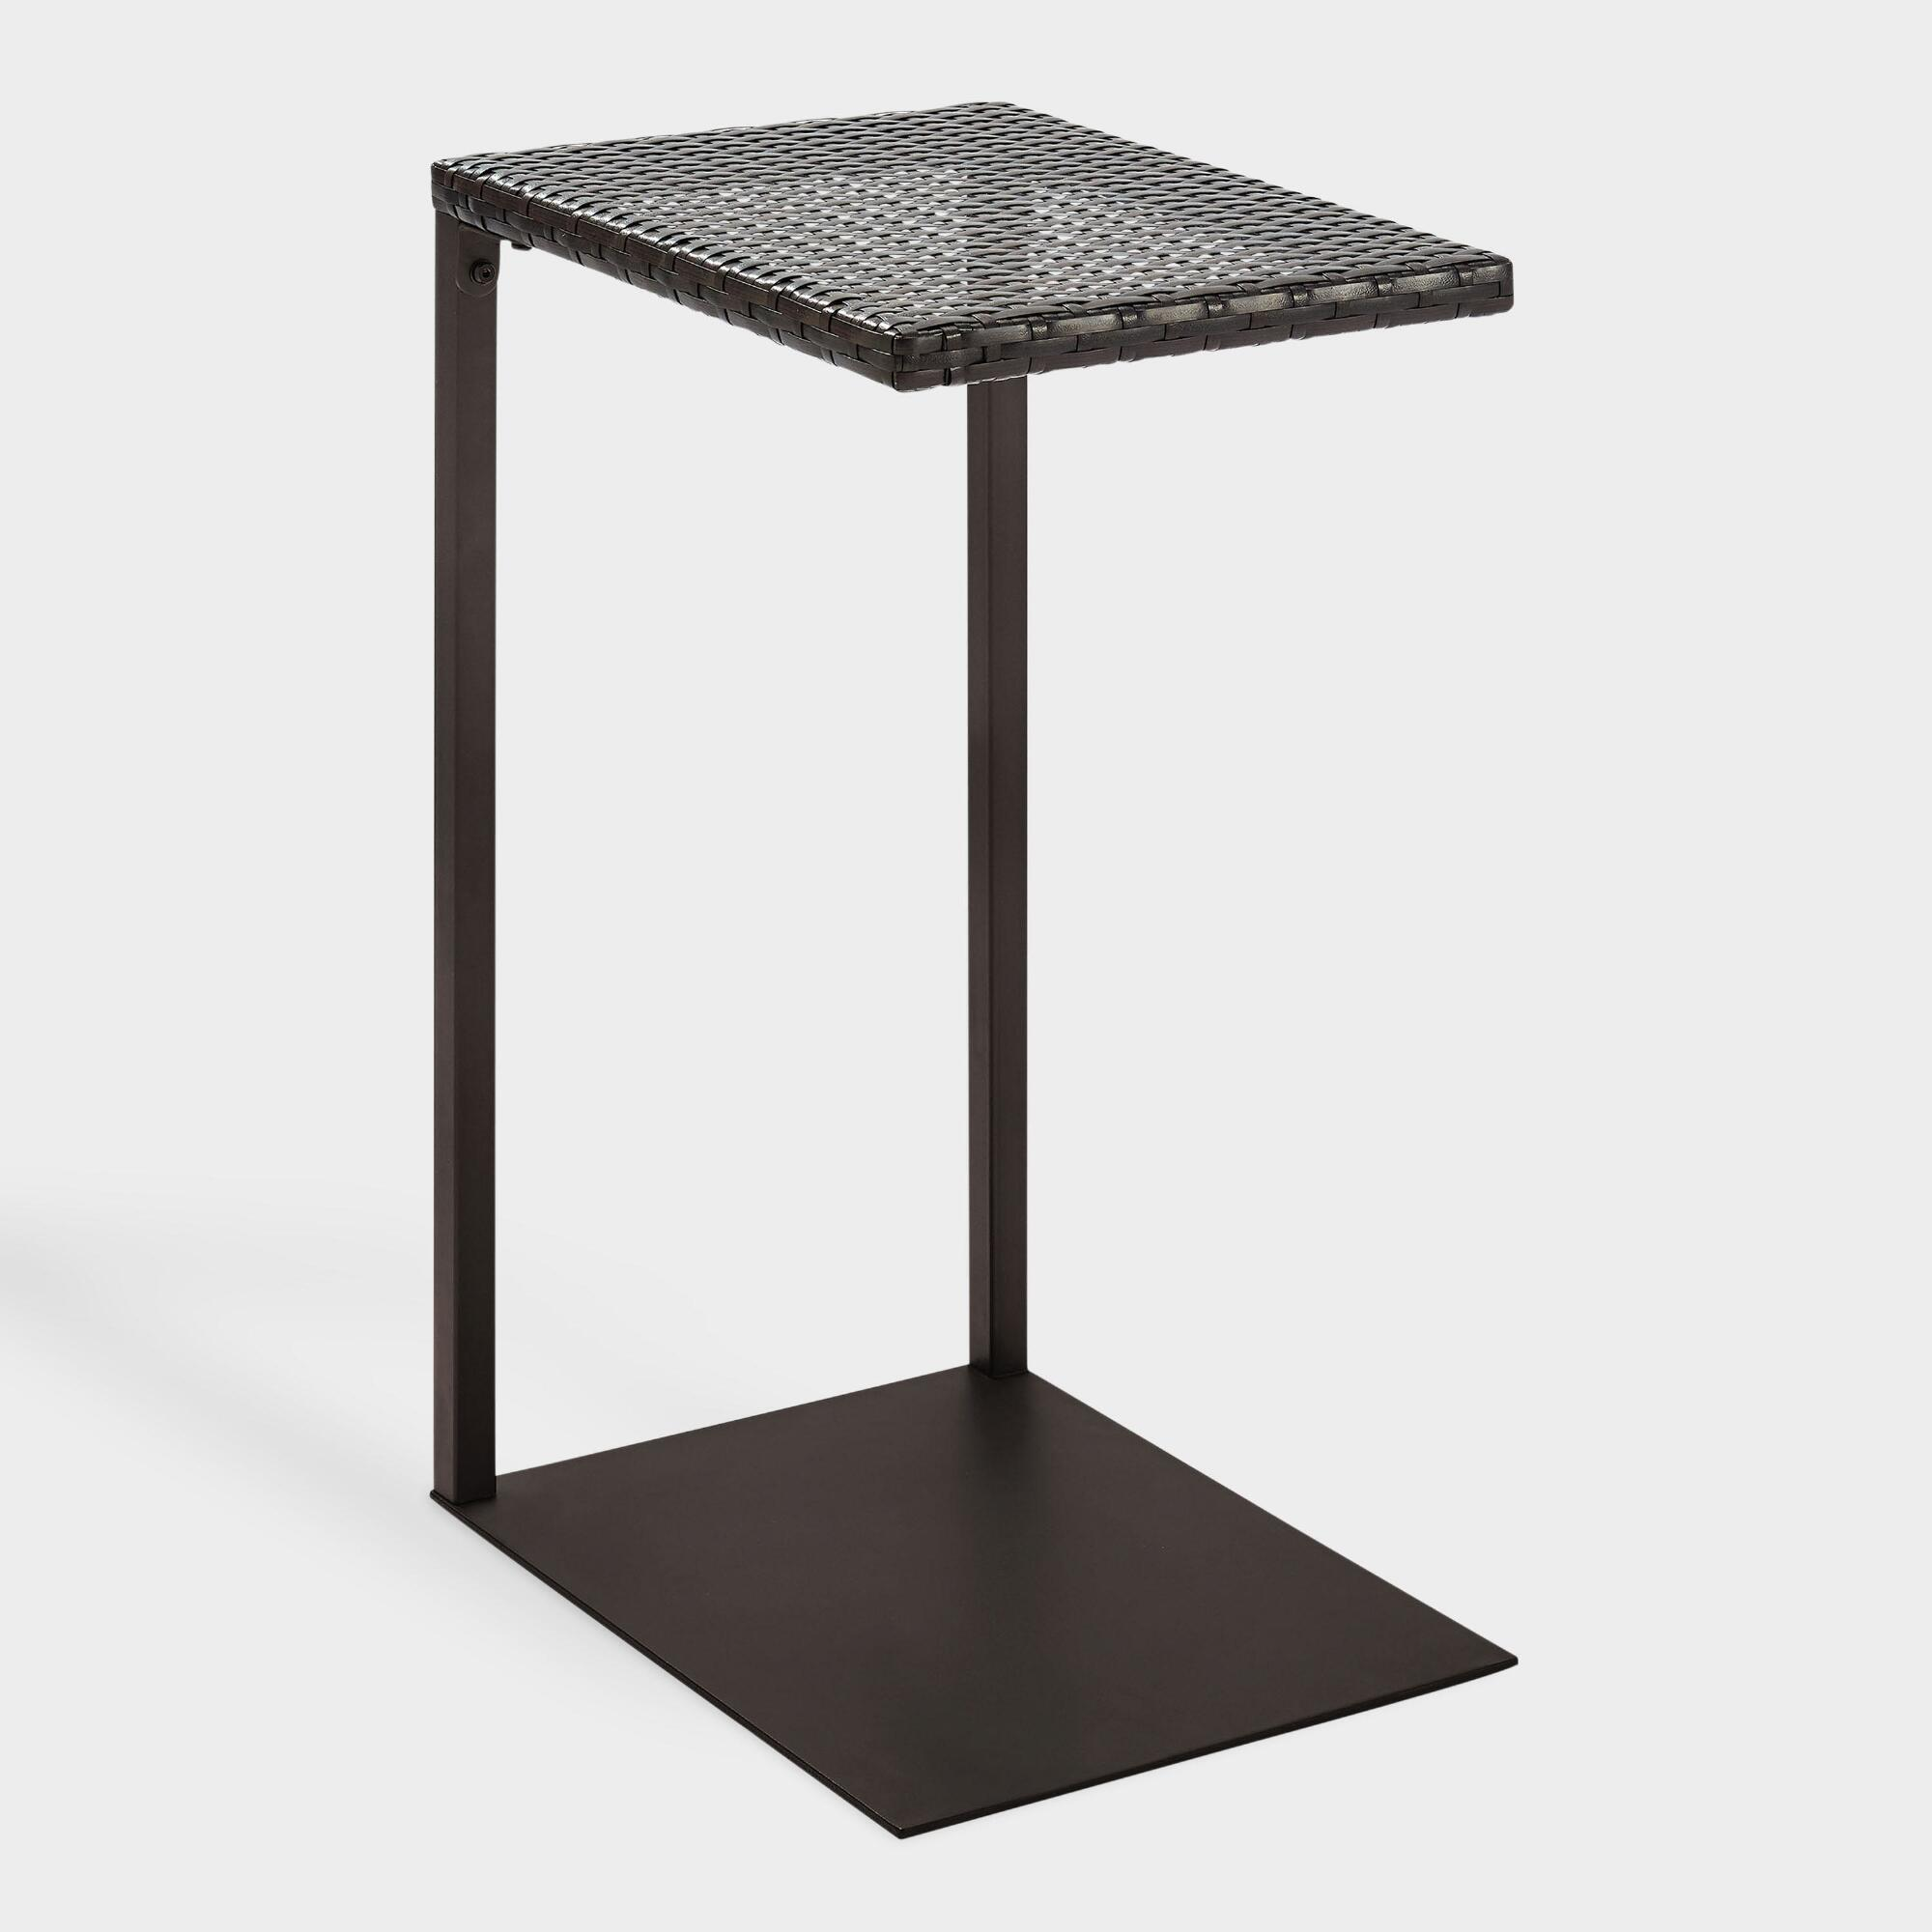 Espresso All Weather Wicker Pinamar Outdoor Patio Laptop Table by World Market